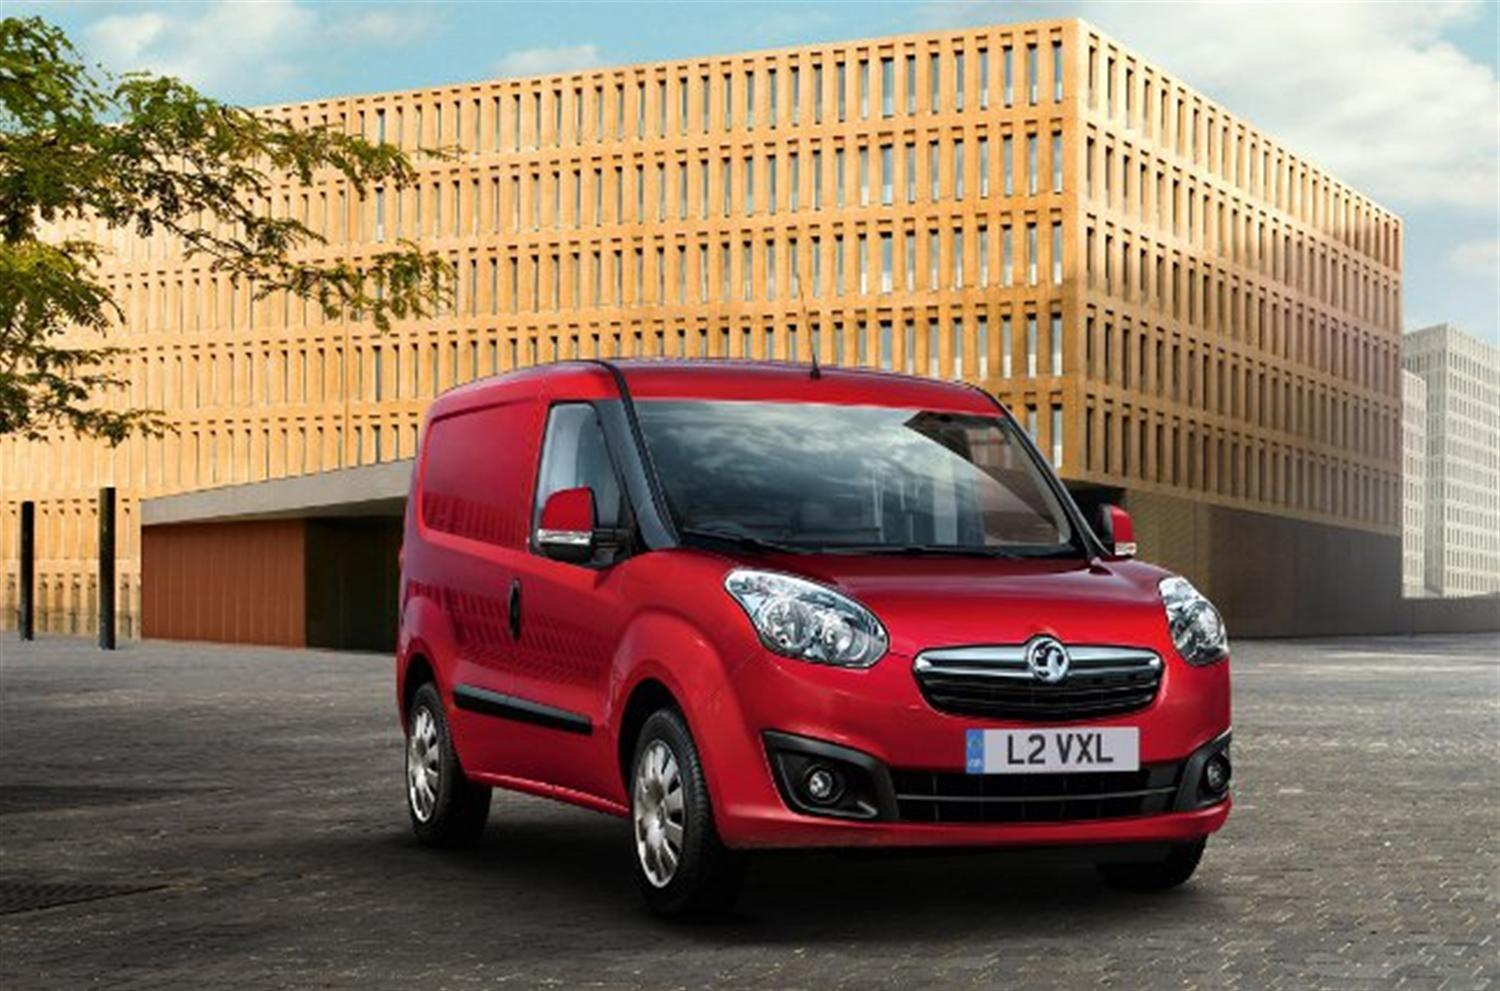 New 2012 Vauxhall Combo gets petrol engine